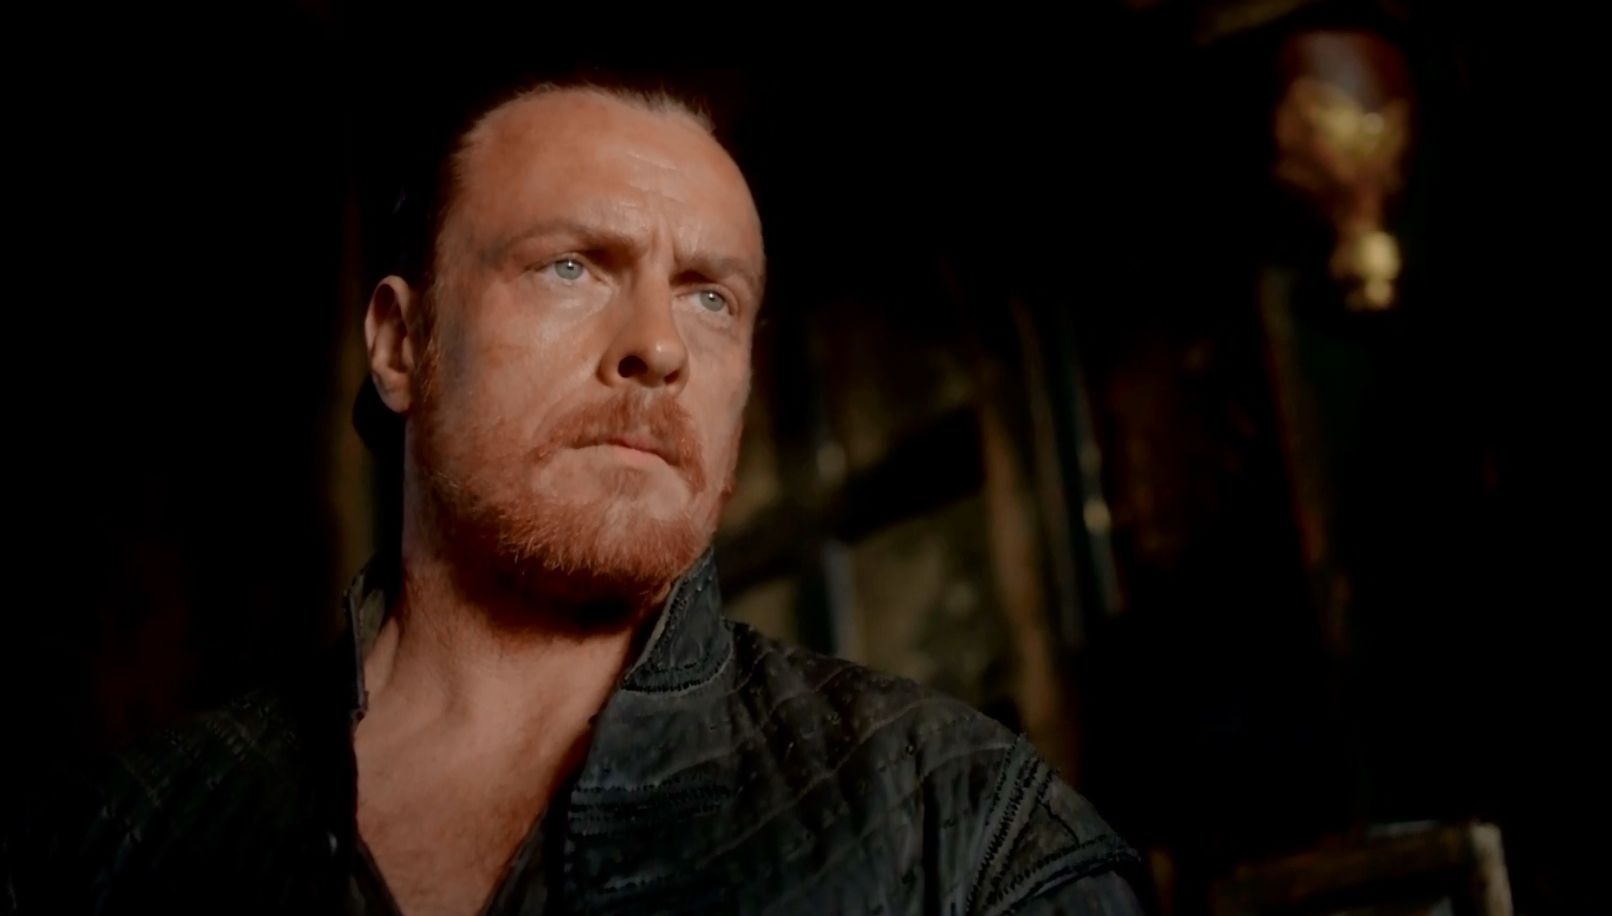 Toby Stephens (born 1969) Toby Stephens (born 1969) new pics